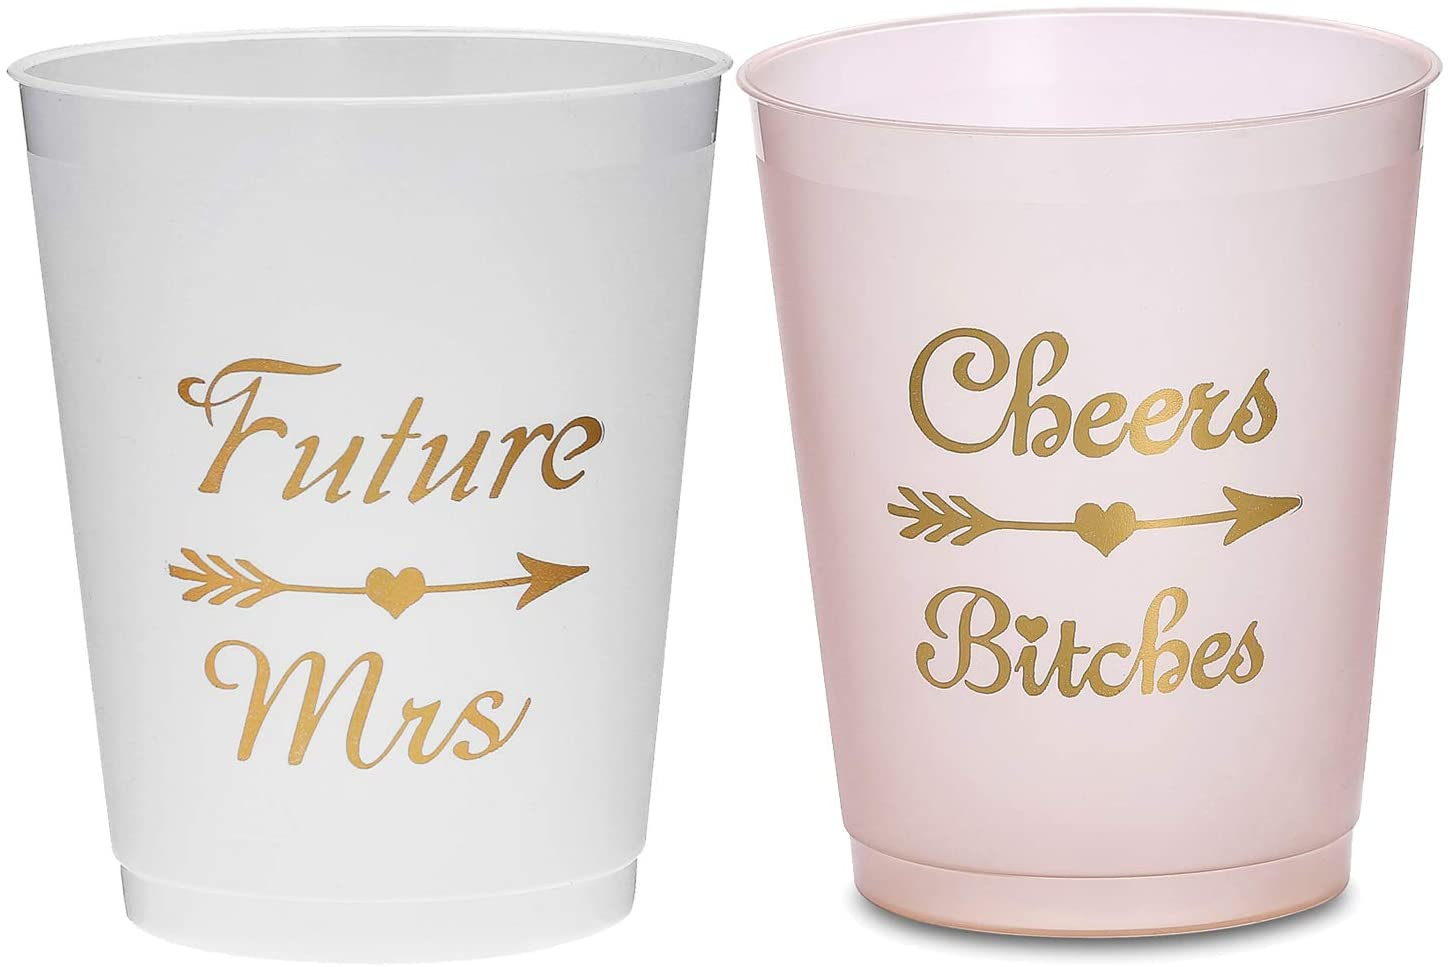 SFHMTL 17 Count 16 Oz Plastic Cups 1 Future Mrs Cup 16 Cheers Bitches Cups Bachelorette Party Decoration Bridal Shower Engagement Party Proposal Funny Friends Party Supplies (Champagne)